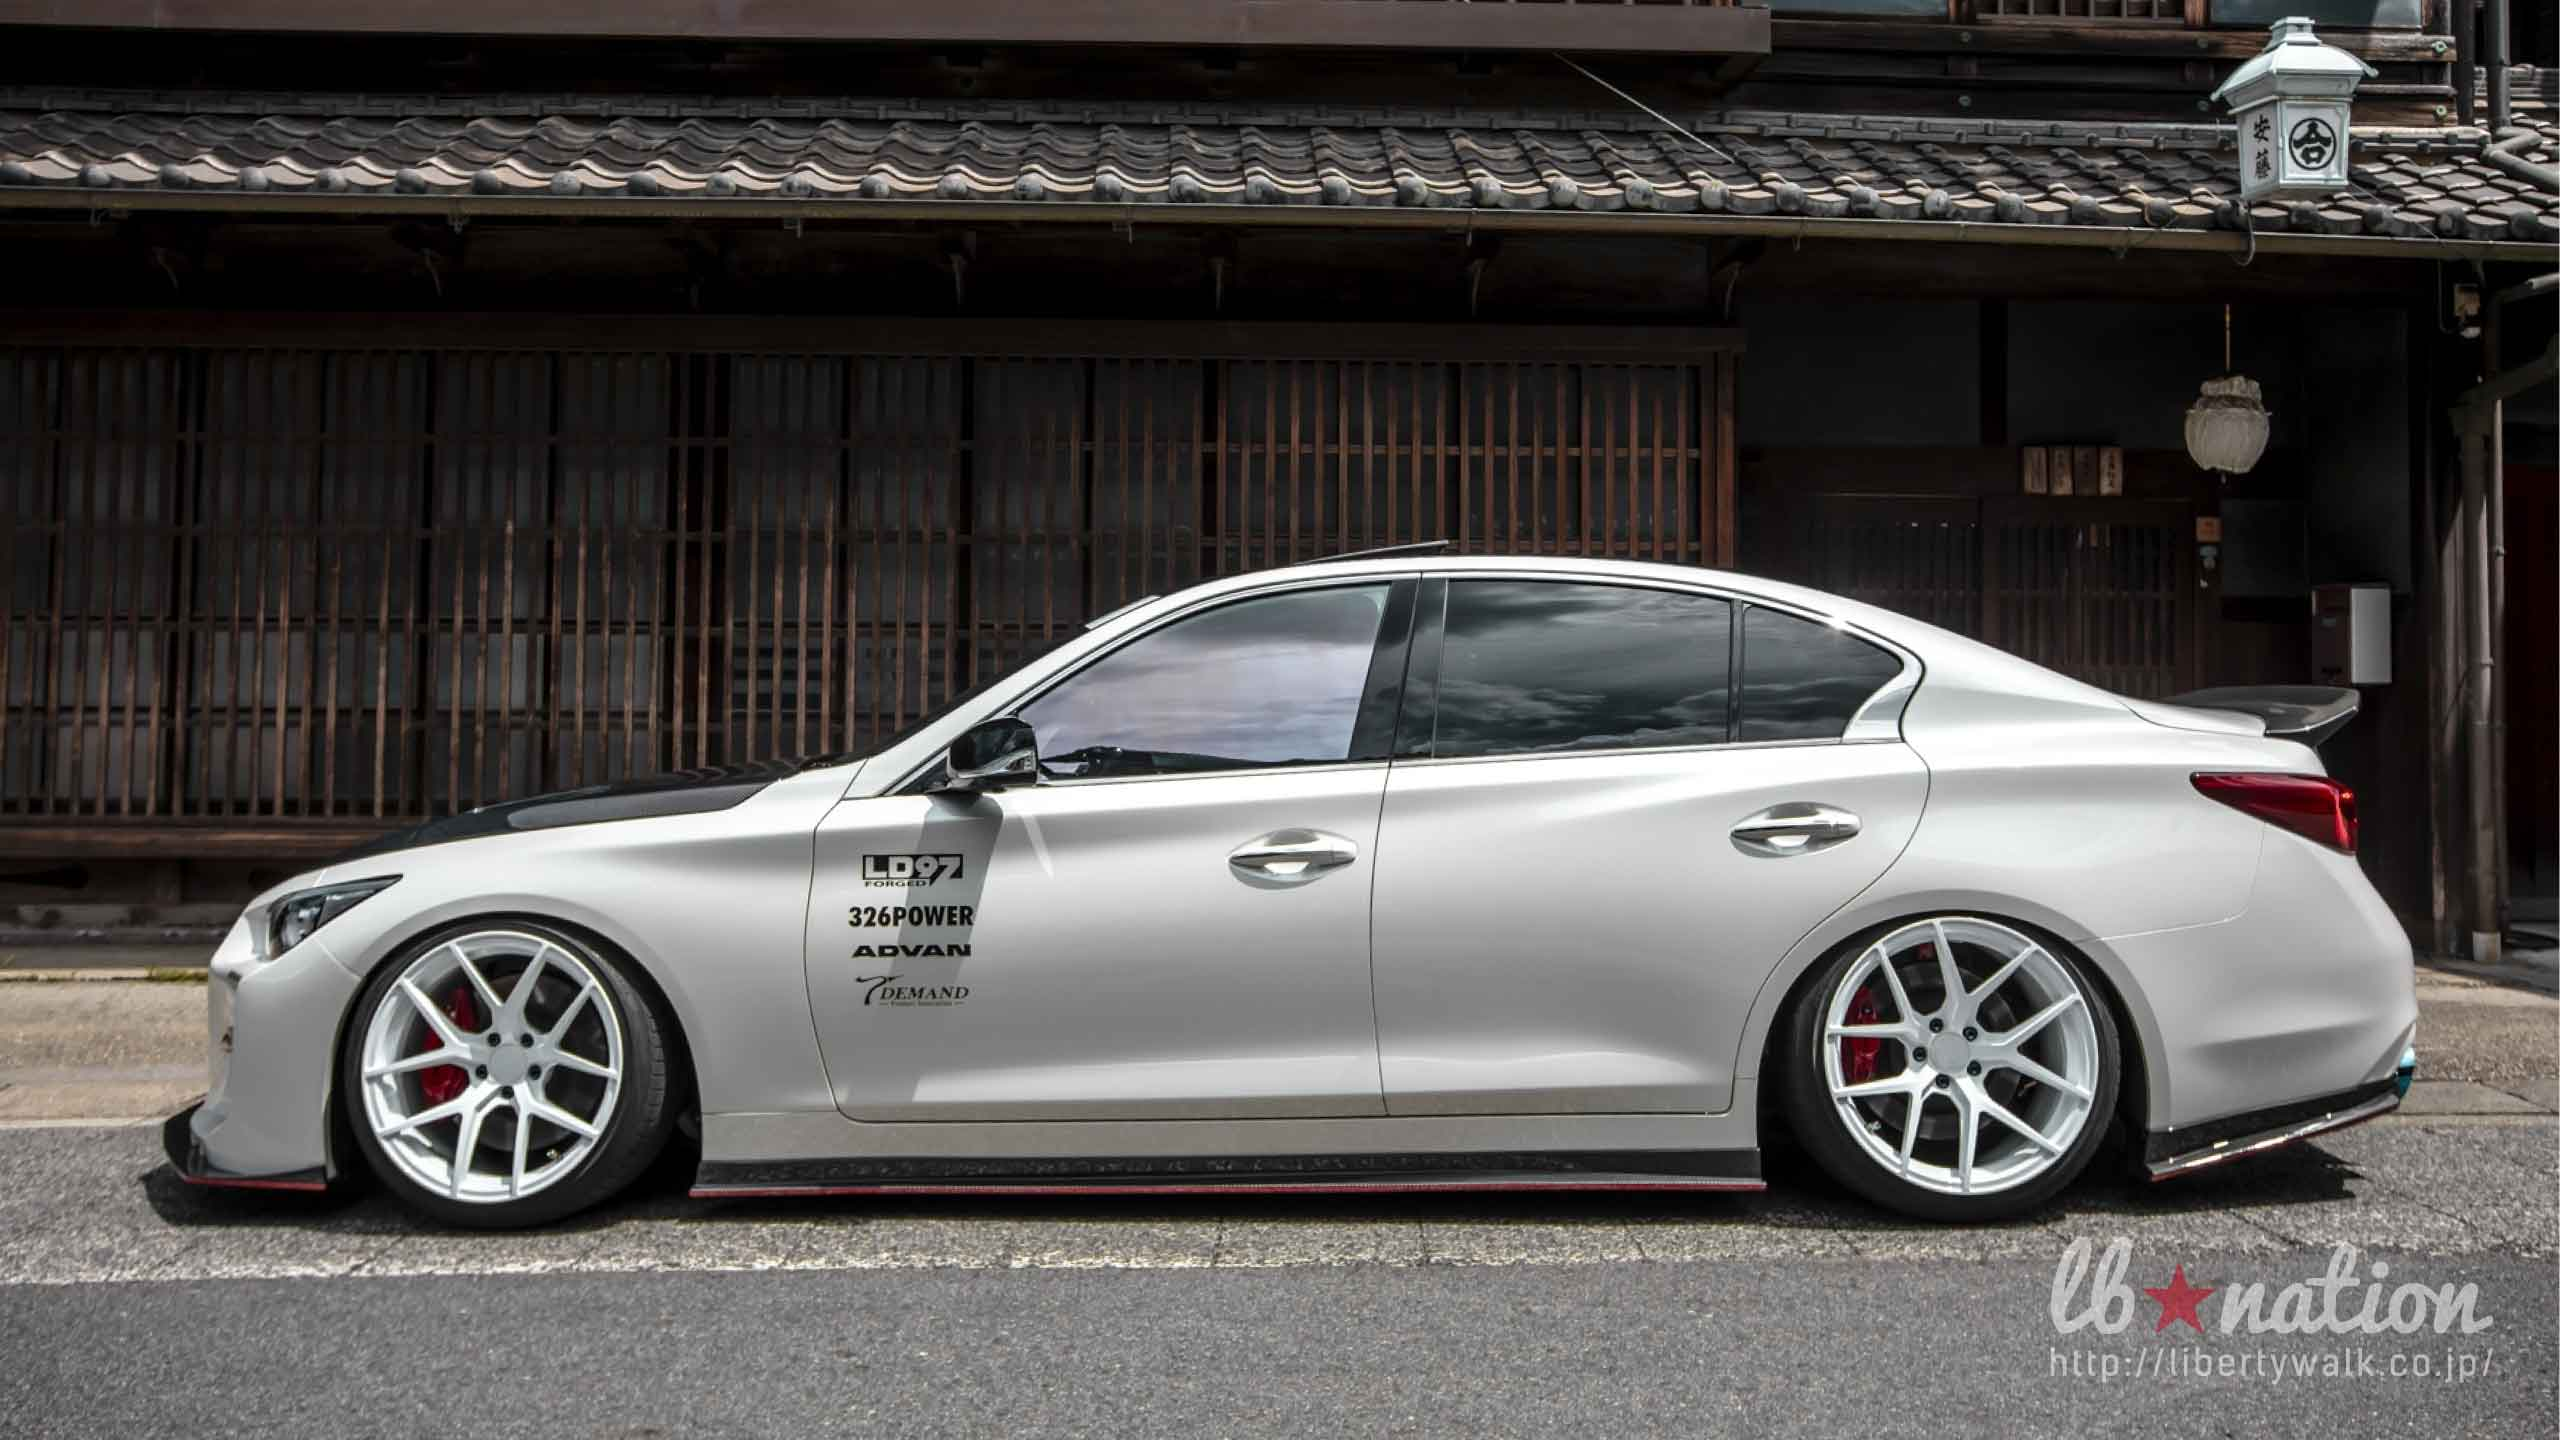 V37_11 lb★nation  NISSAN V37 SKYLINE / INFINITI Q50